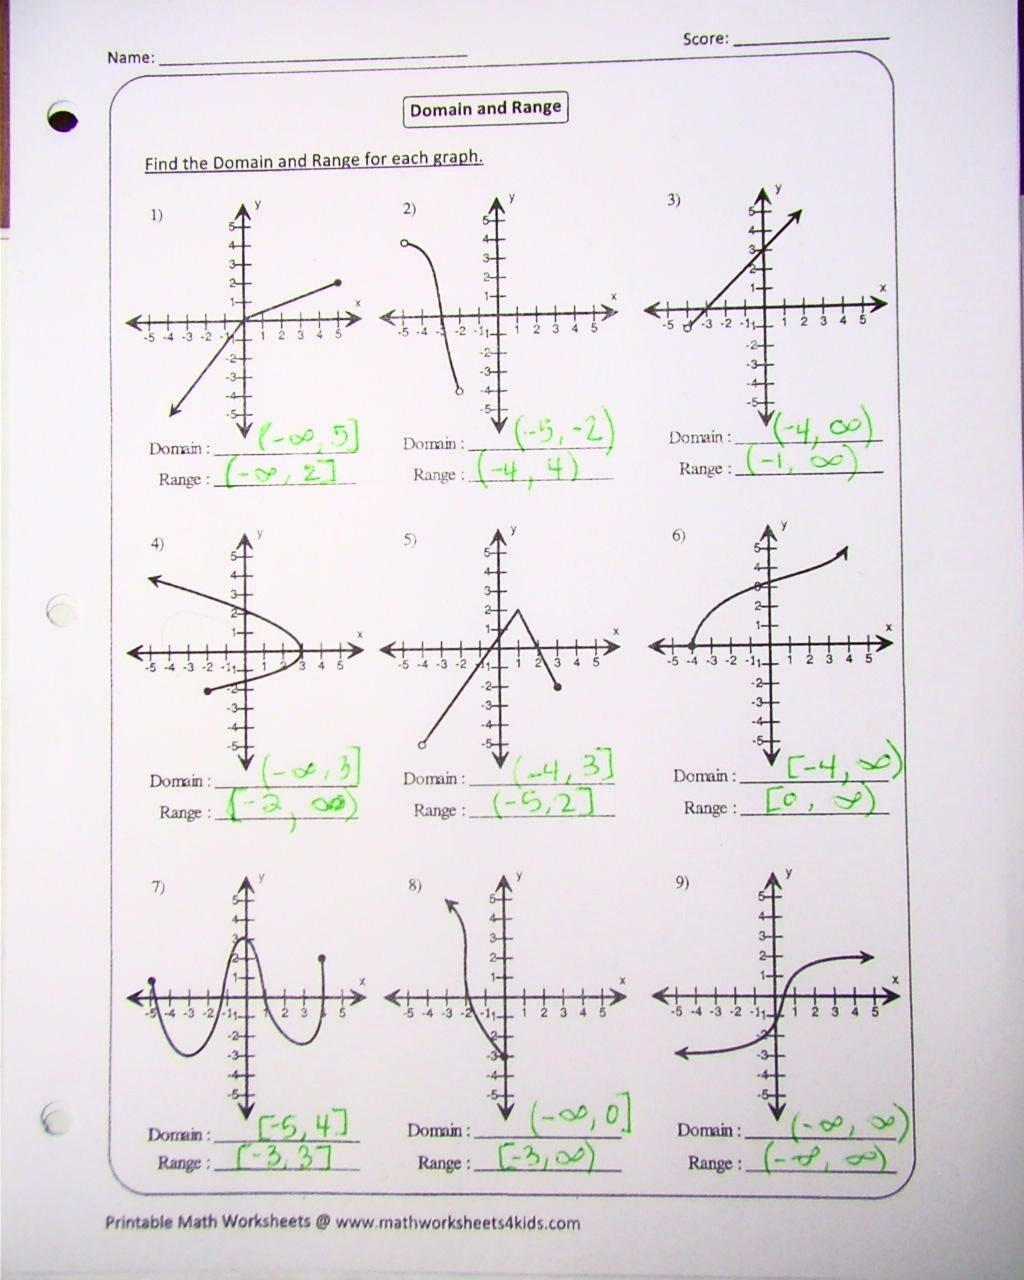 Domain and Range Worksheet Answers Elegant Domain and Range Homework Worksheet Answers Breadandhearth